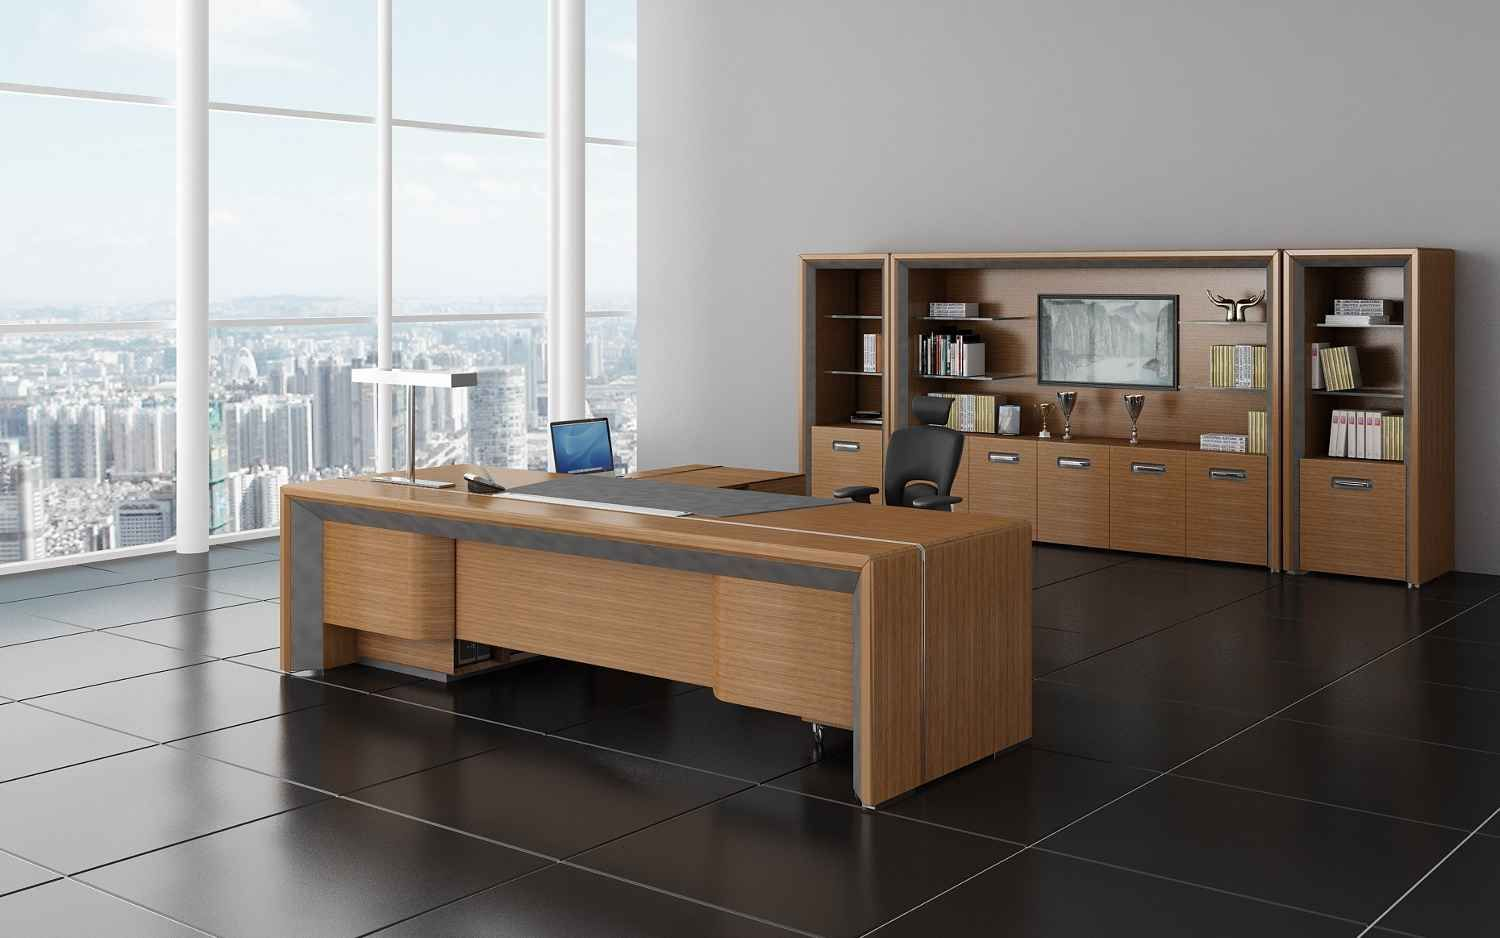 Modern Wood Cabinetry Furniture Feat Ergonomic Office Chair And